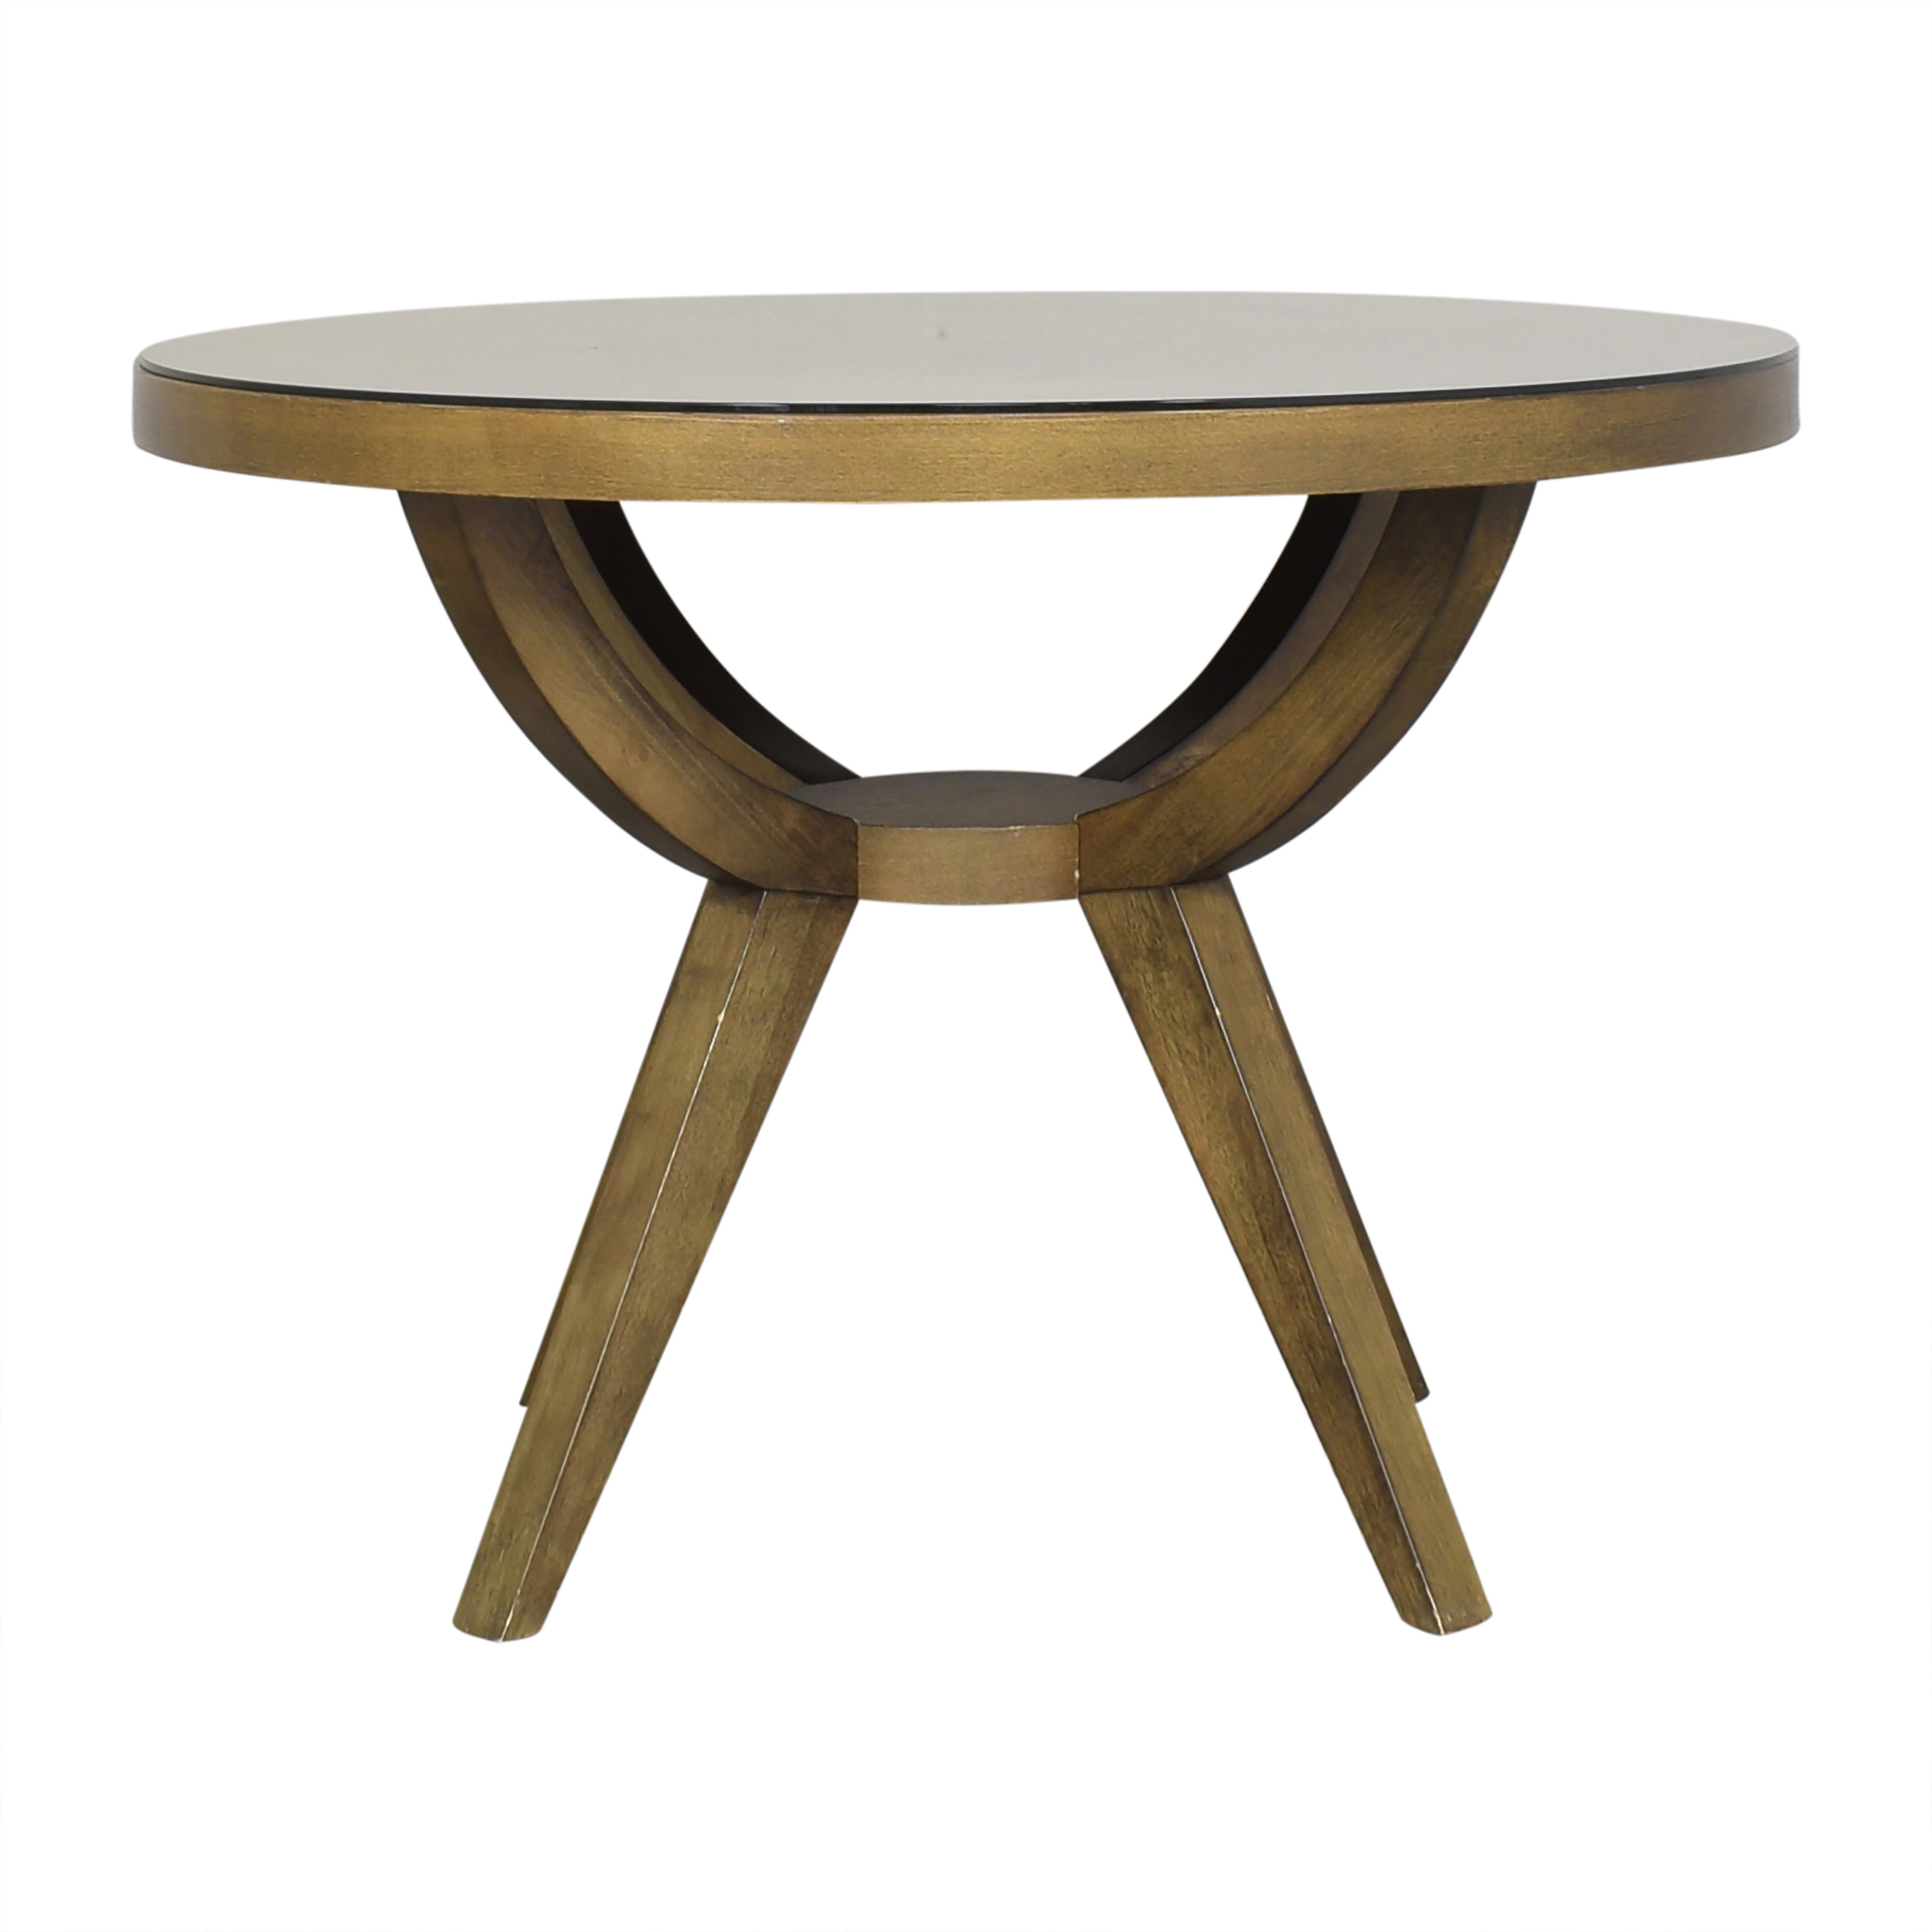 West Elm West Elm Arc Base Pedestal Dining Table price